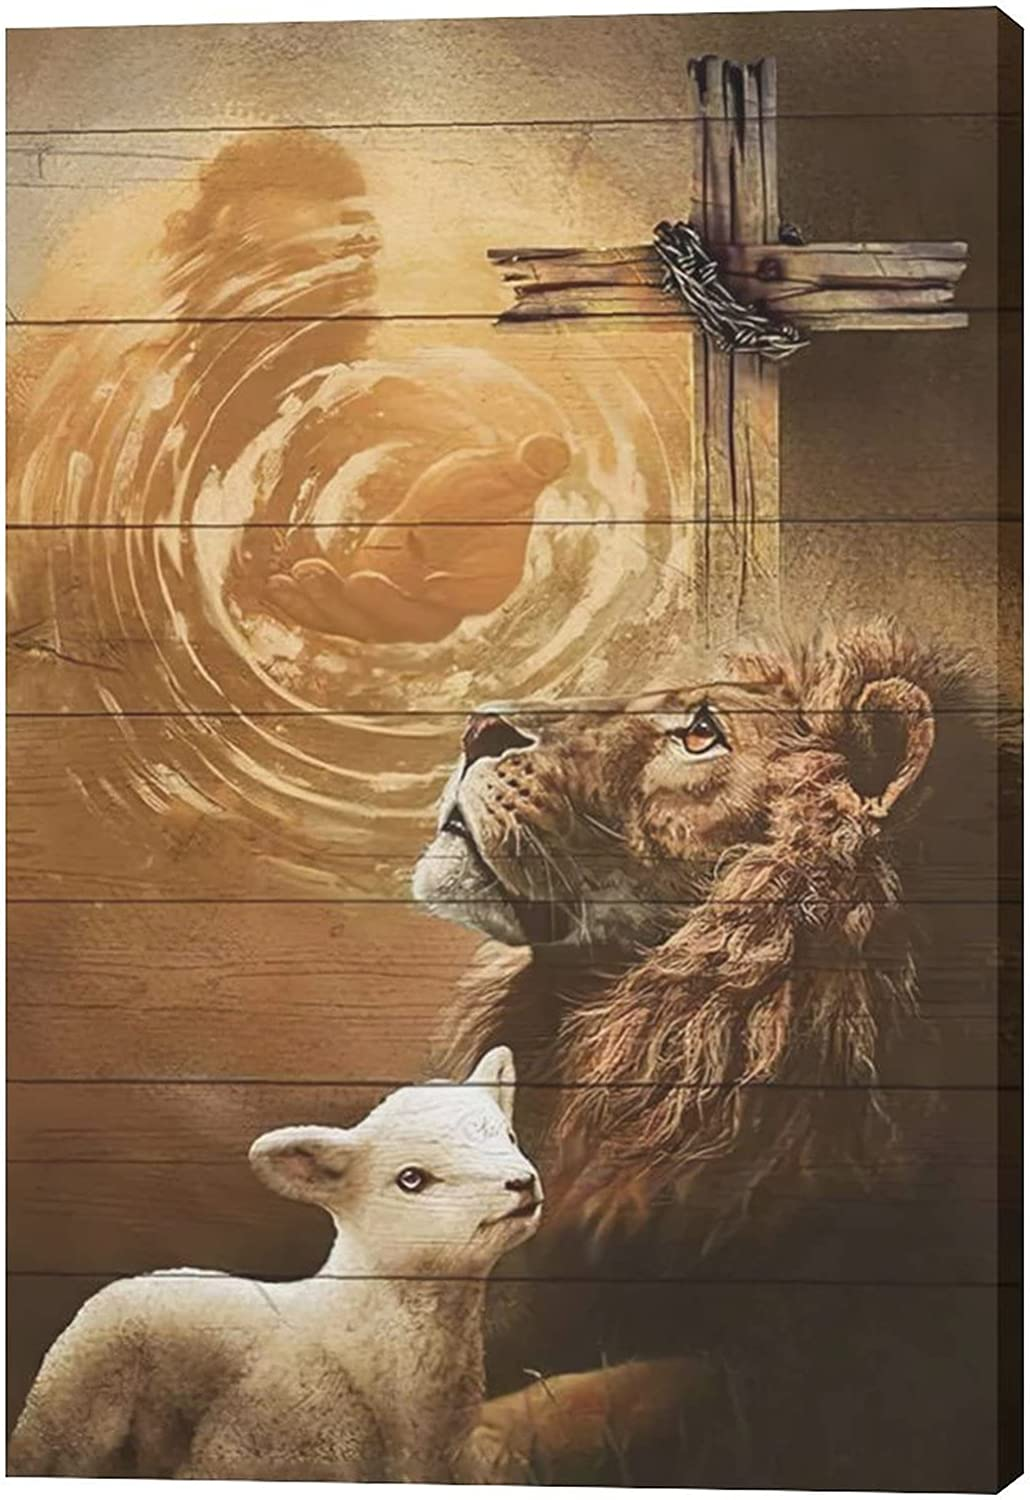 Jesus Lion And Lamb Canvas Wall Art Decor Gifts For Christian Lion Of Judah Religious Canvas Painting for Wall Easter Prints God Artwork Poster Framed Home Wall Decor for Church Living room Bedroom